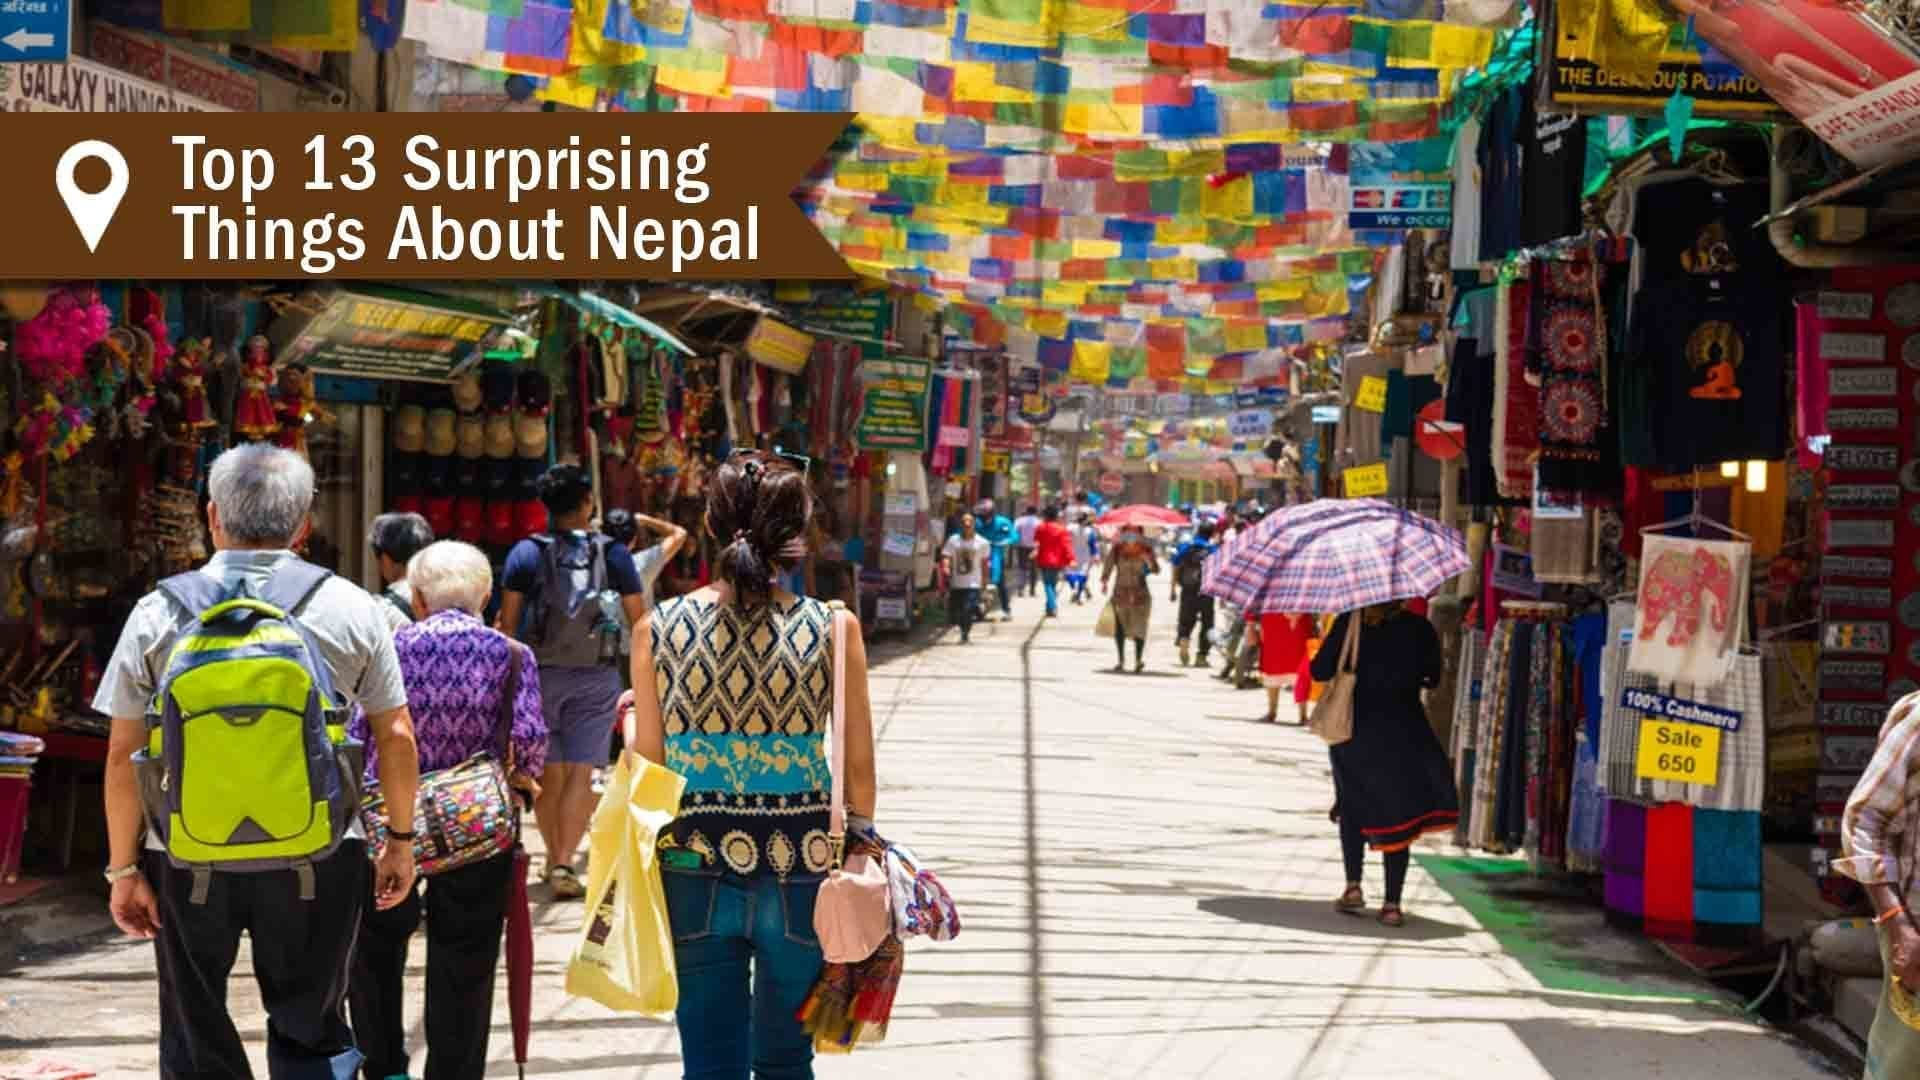 Top 13 Surprising Things About Nepal - Travel Life Experiences